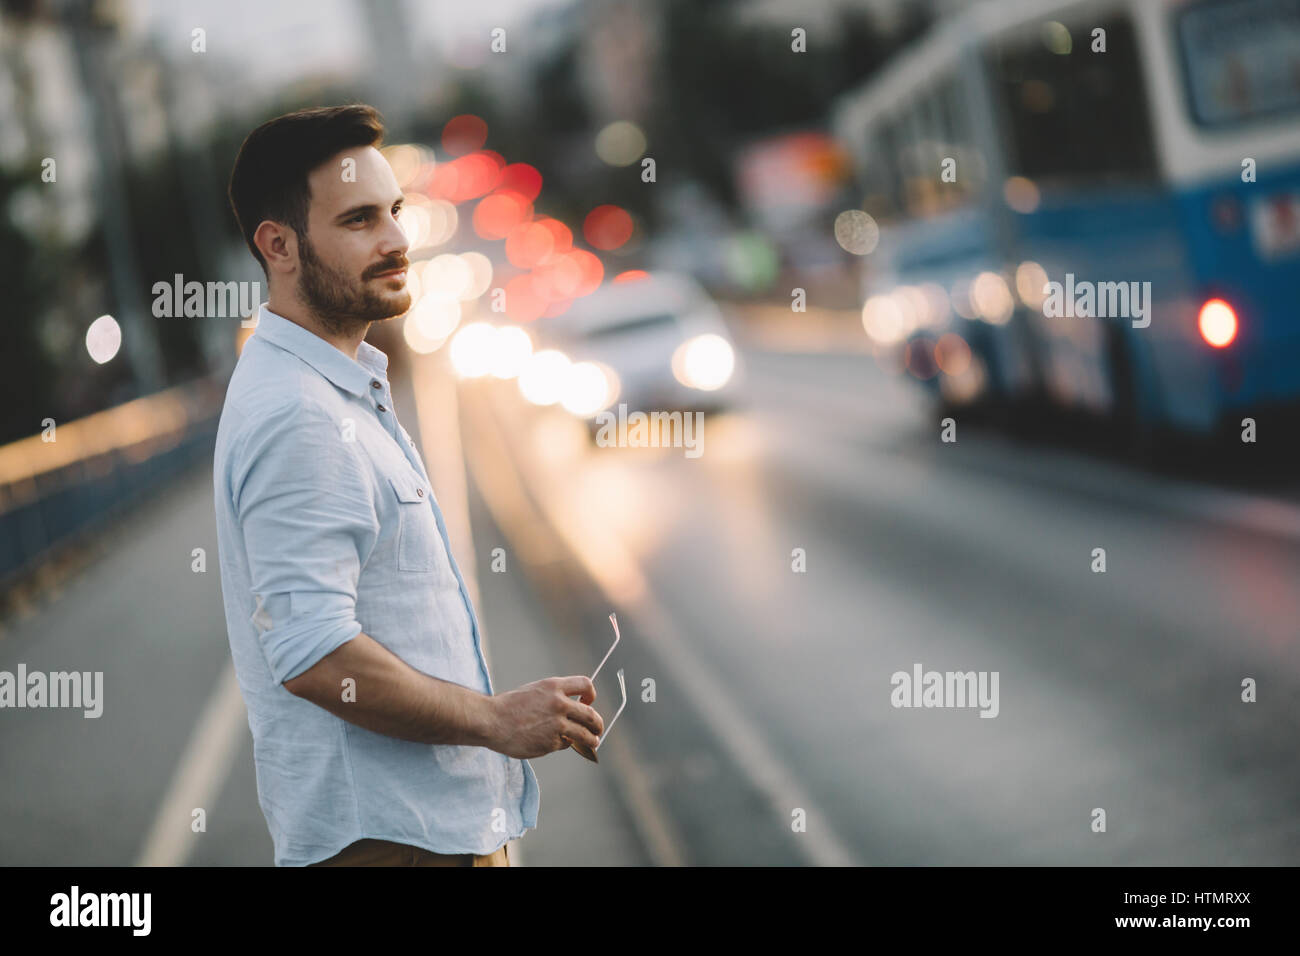 Aided by neon and city lights a male is walking home in city - Stock Image